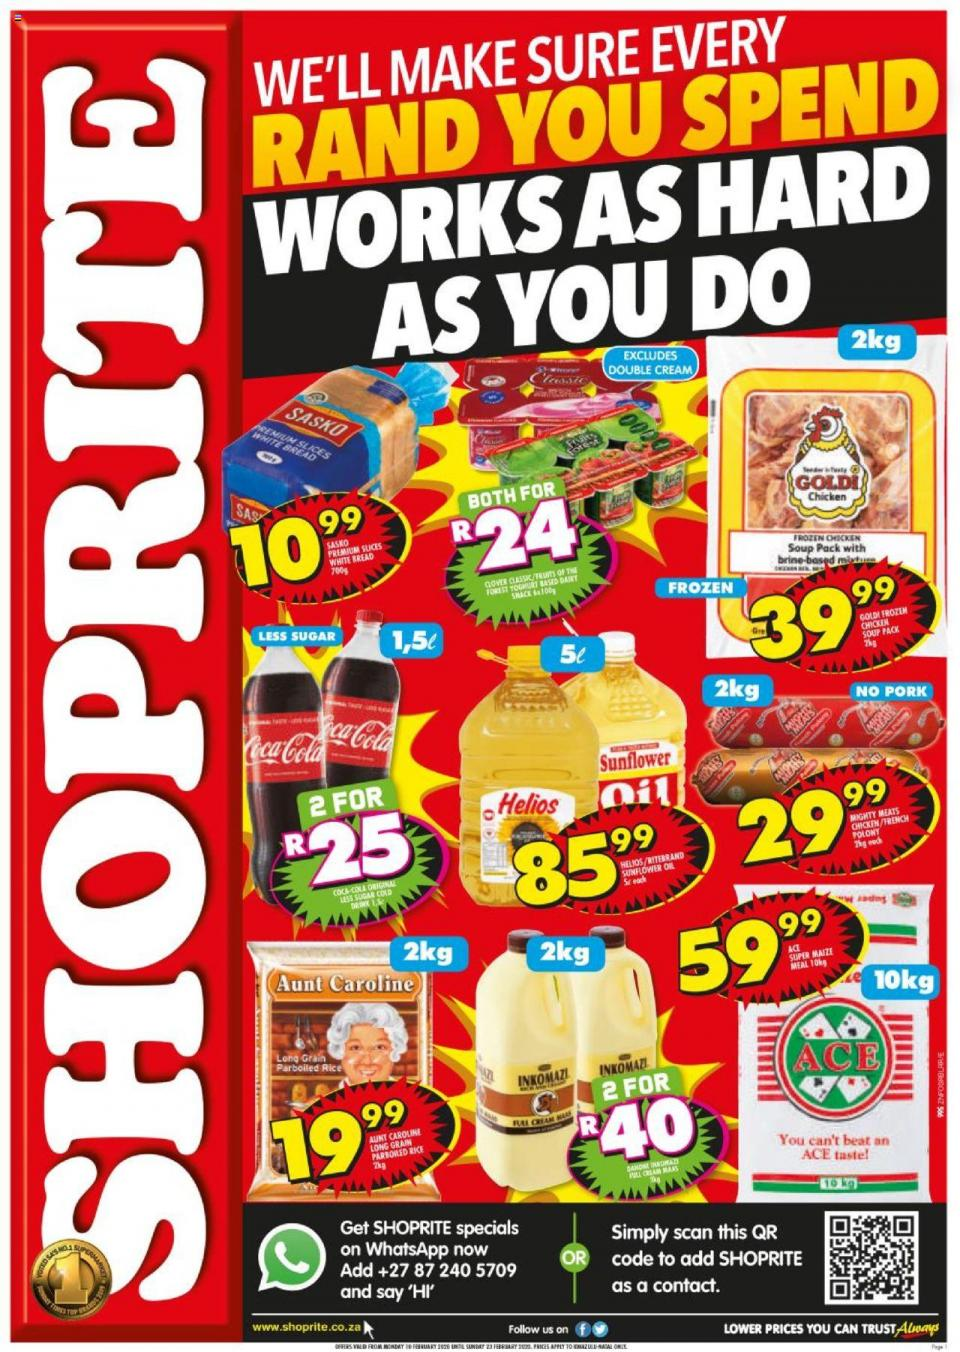 shoprite specials hustle promotion 10 february 2020